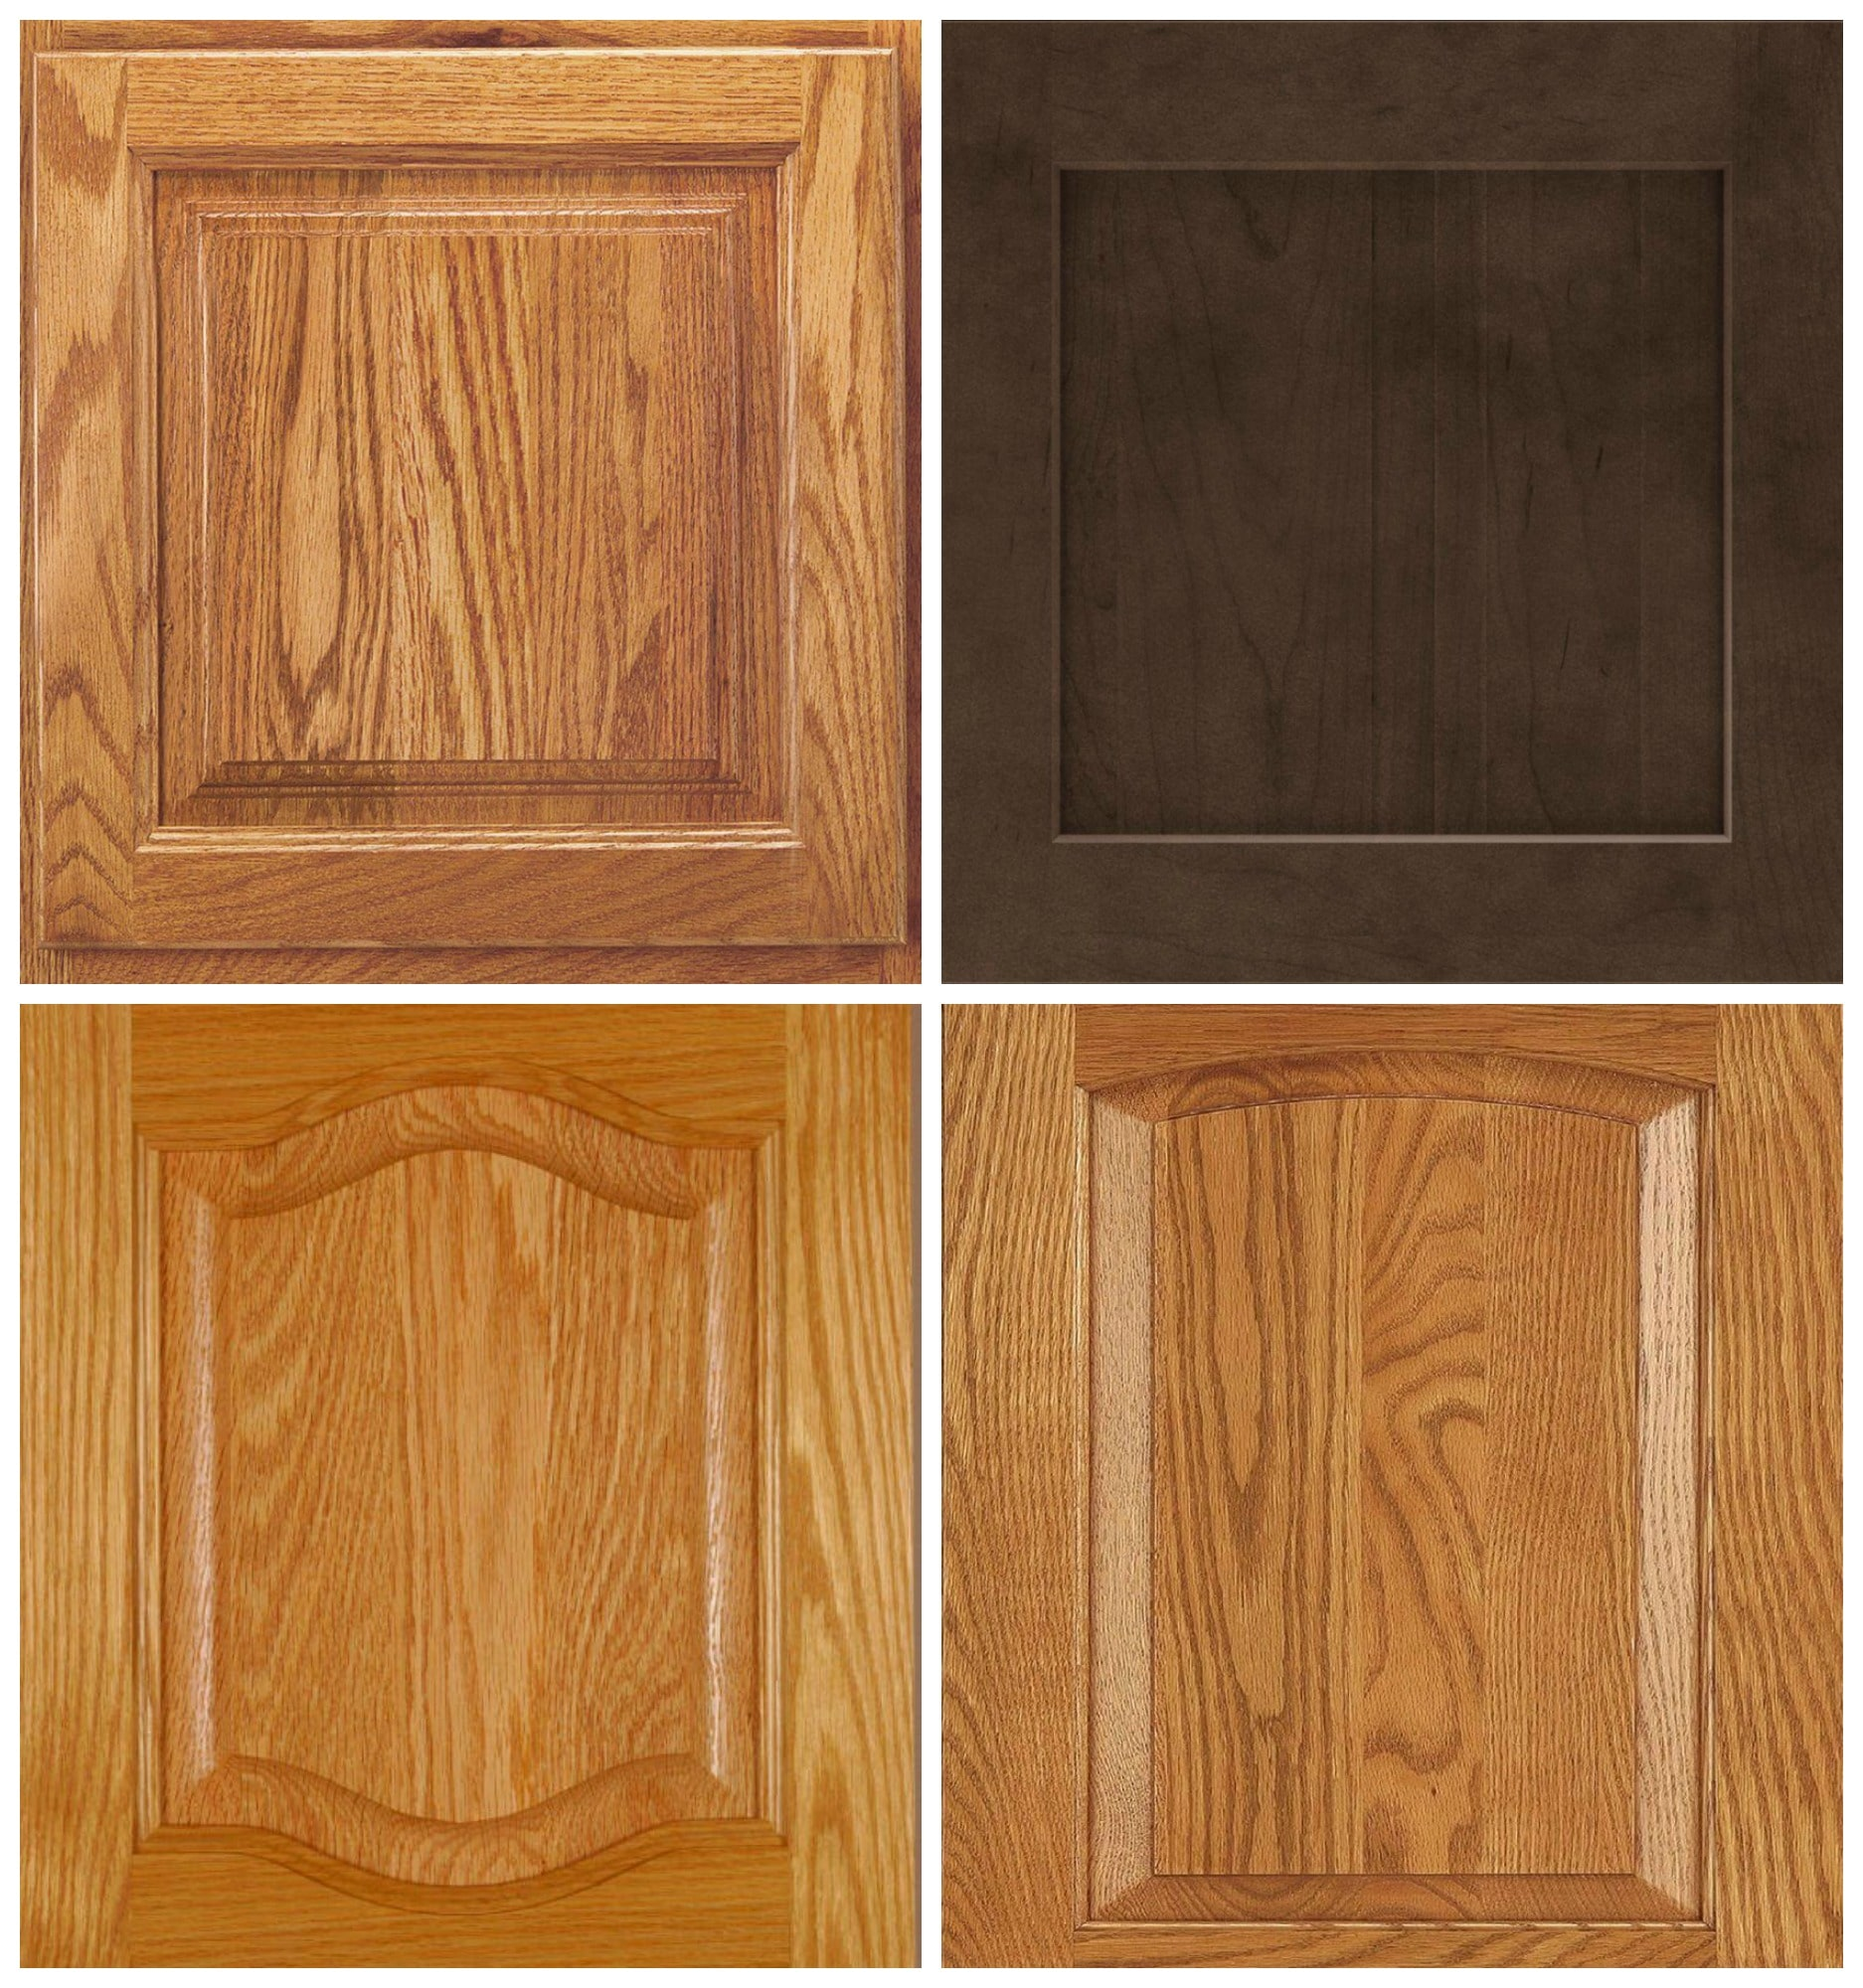 Brown Oak Kitchen Cabinets: Cabinet Door Profiles, Ideas To Update Oak Cabinets